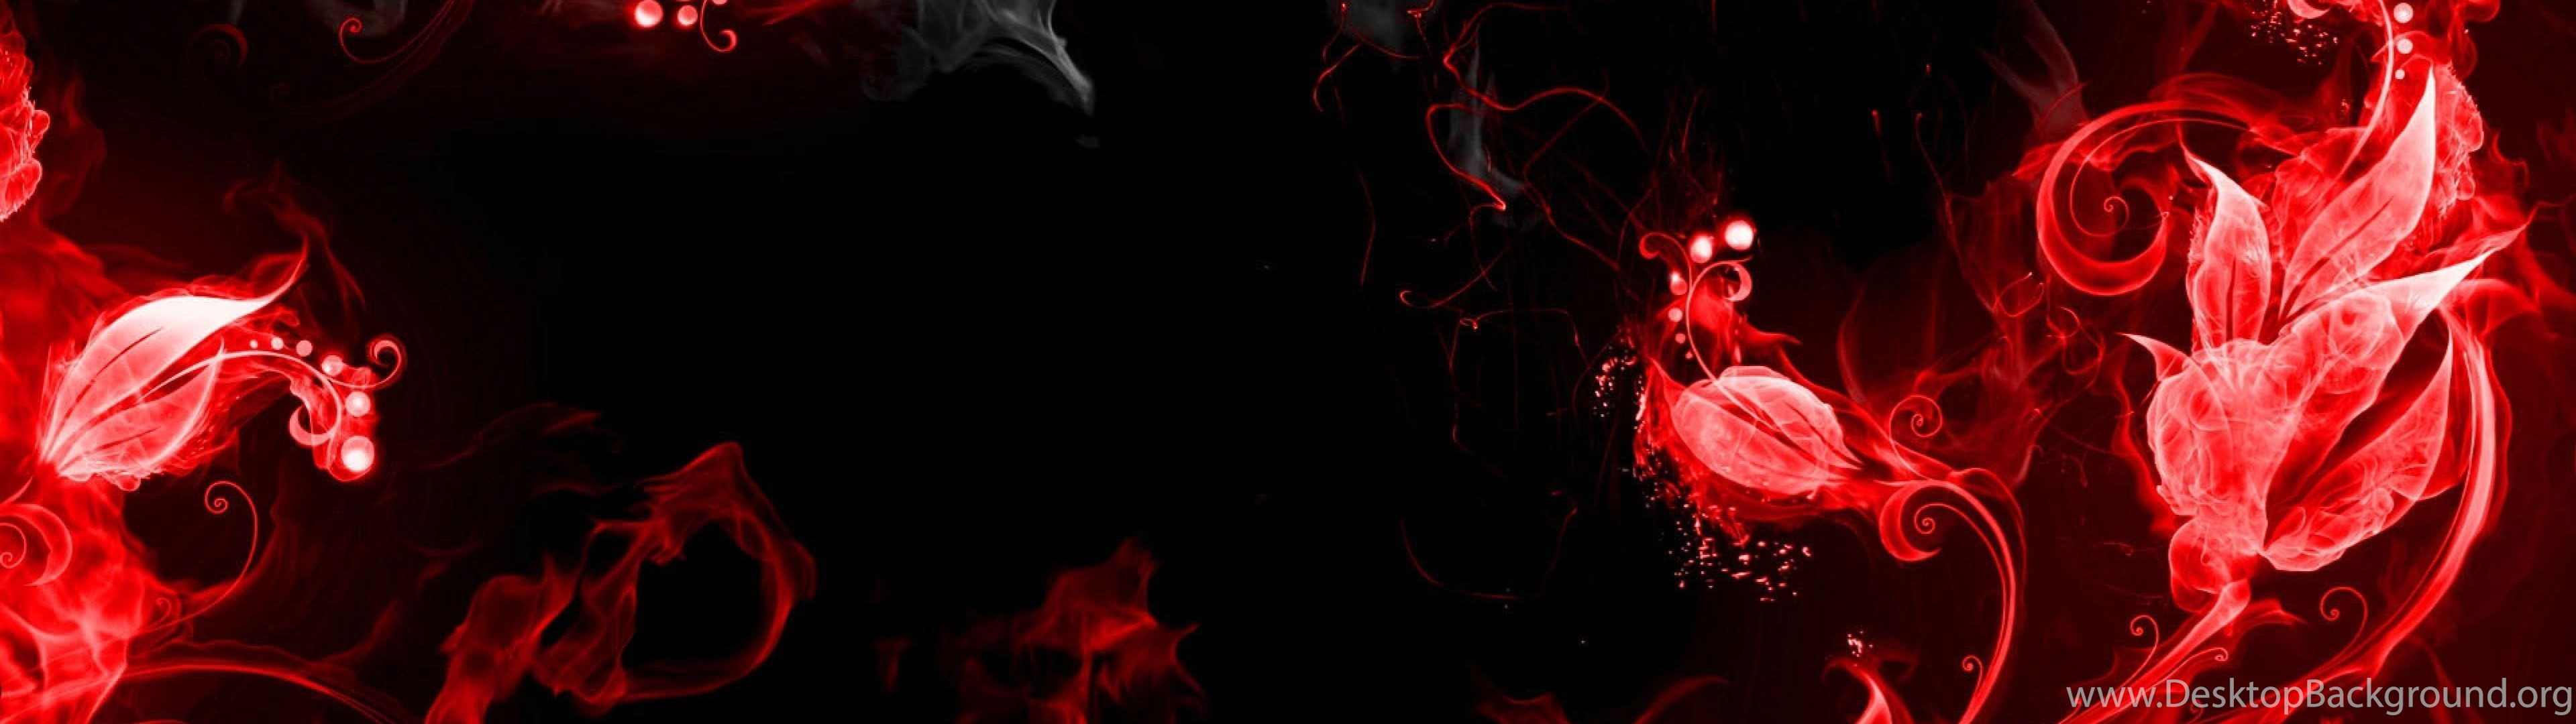 download wallpapers 3840x2160 abstraction red smoke